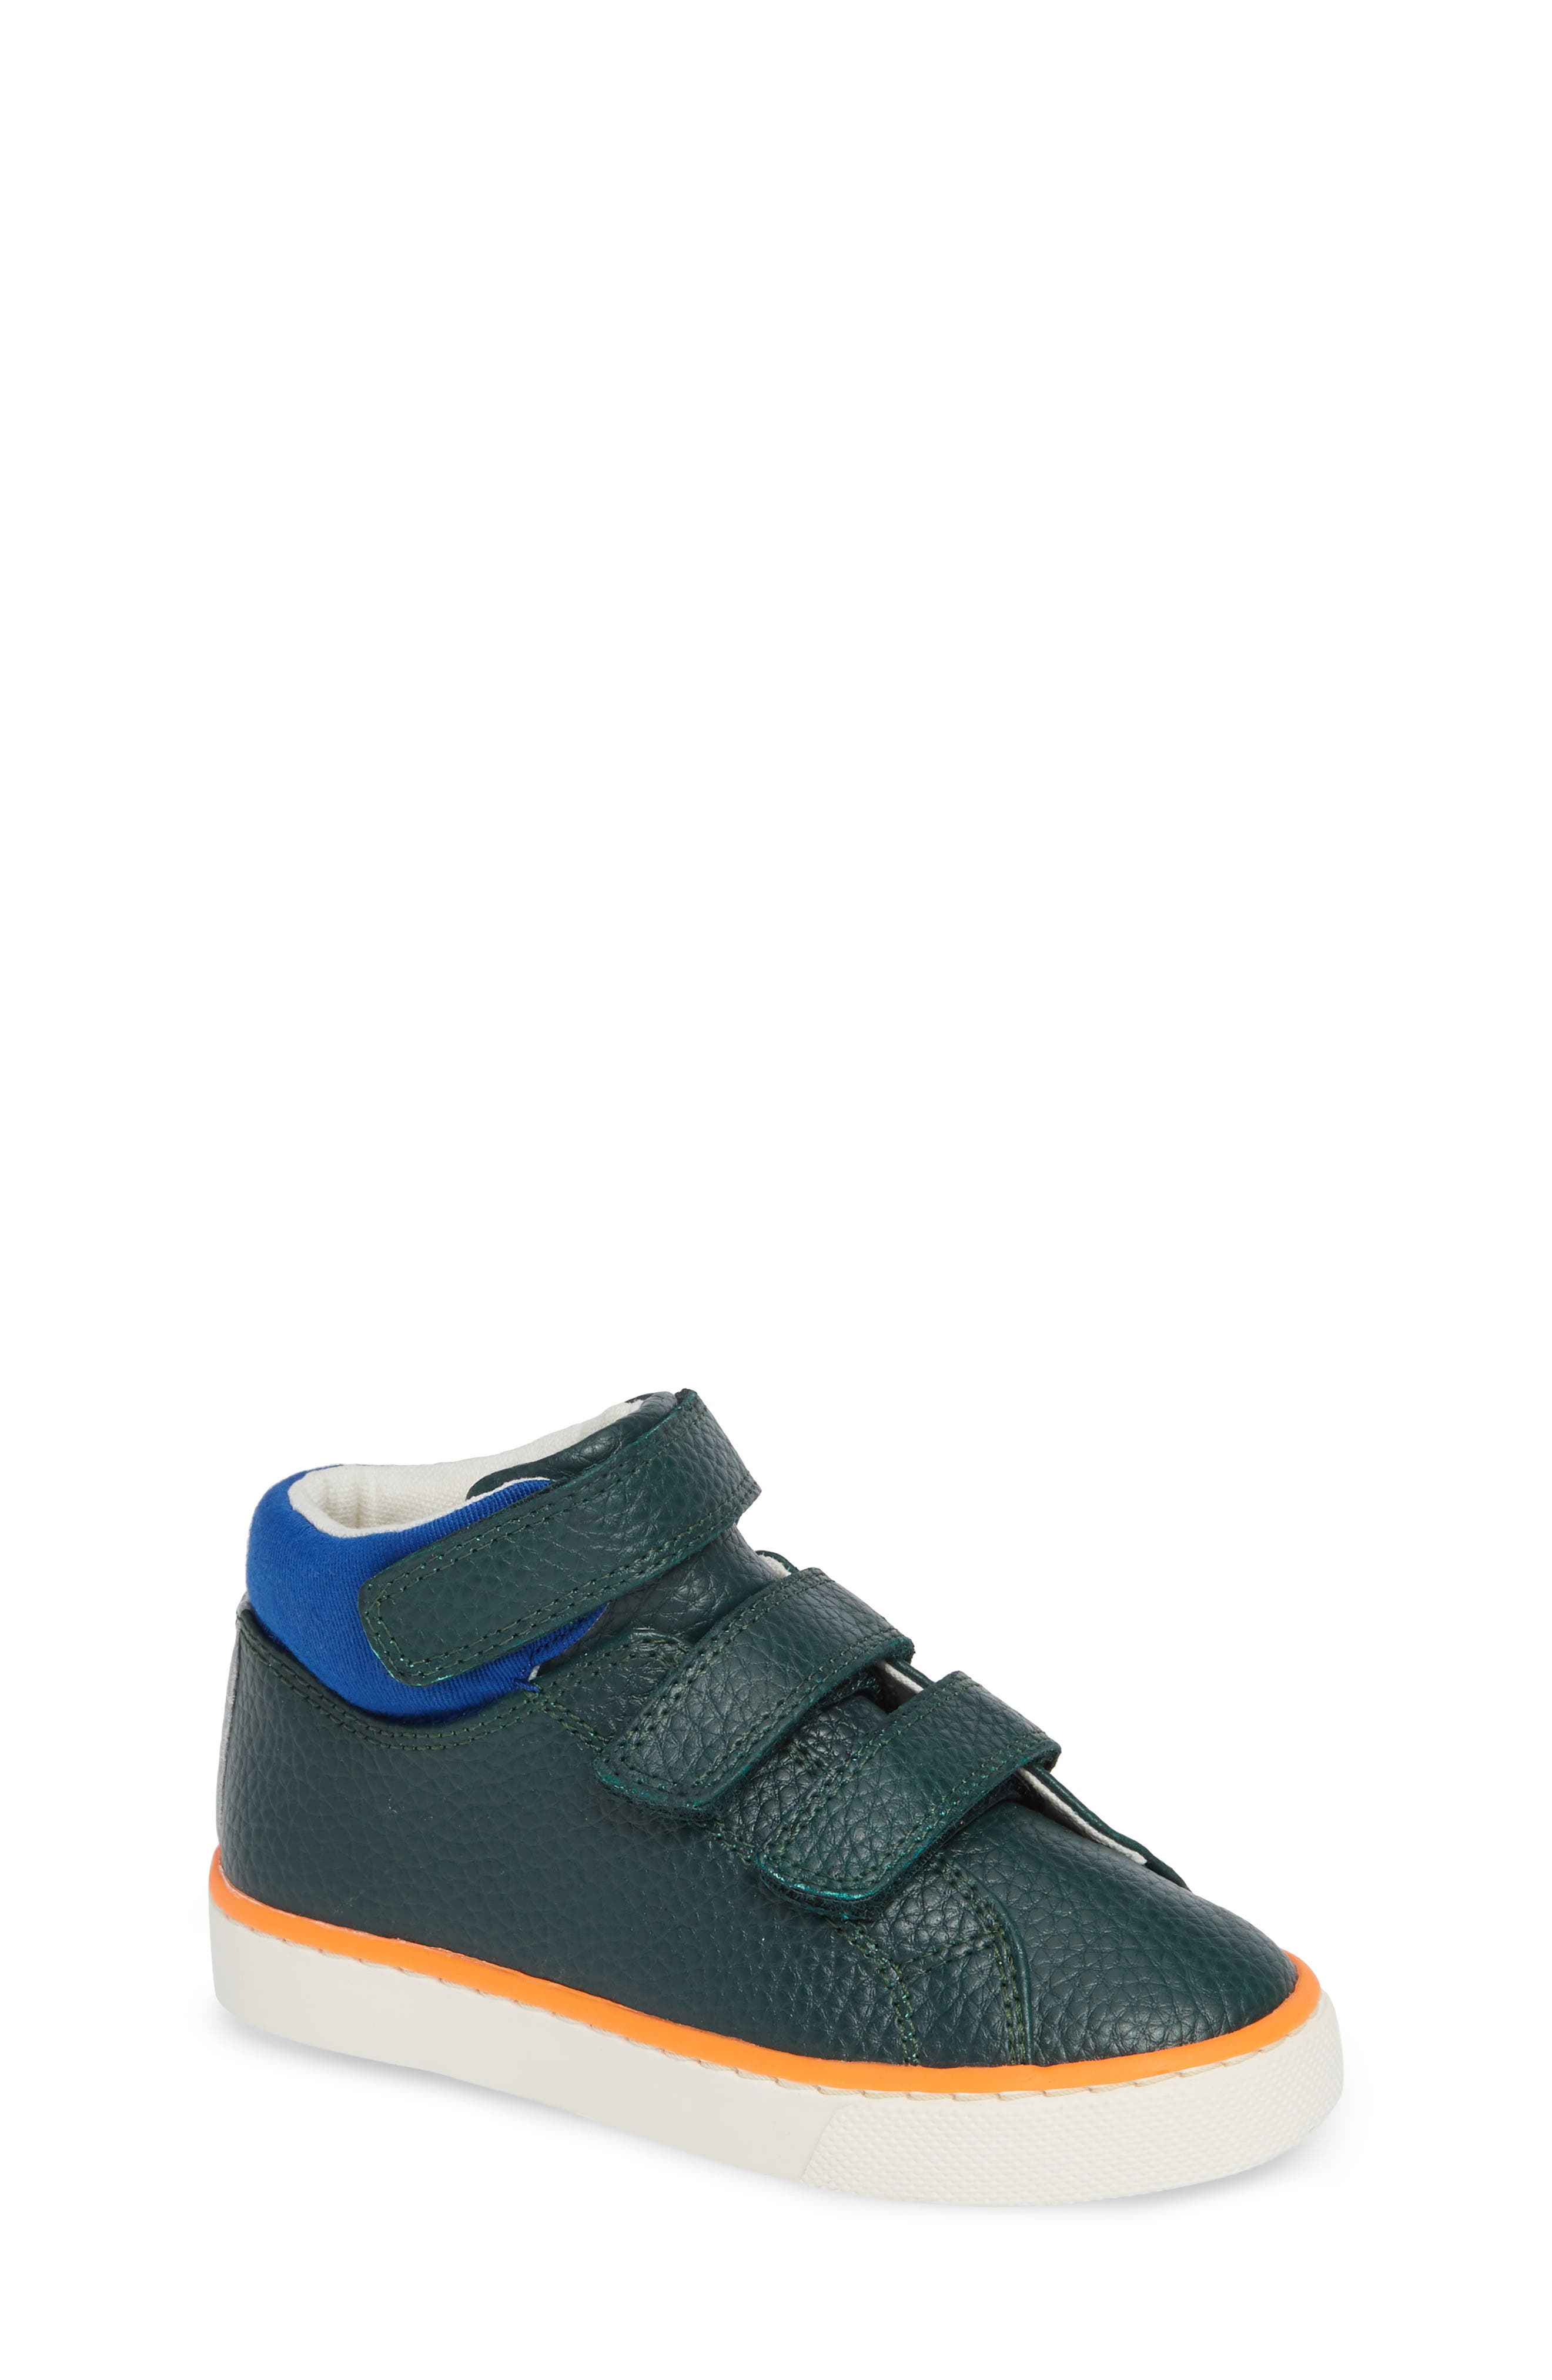 High Top Sneaker,                         Main,                         color, SCOTTS PINE GREEN